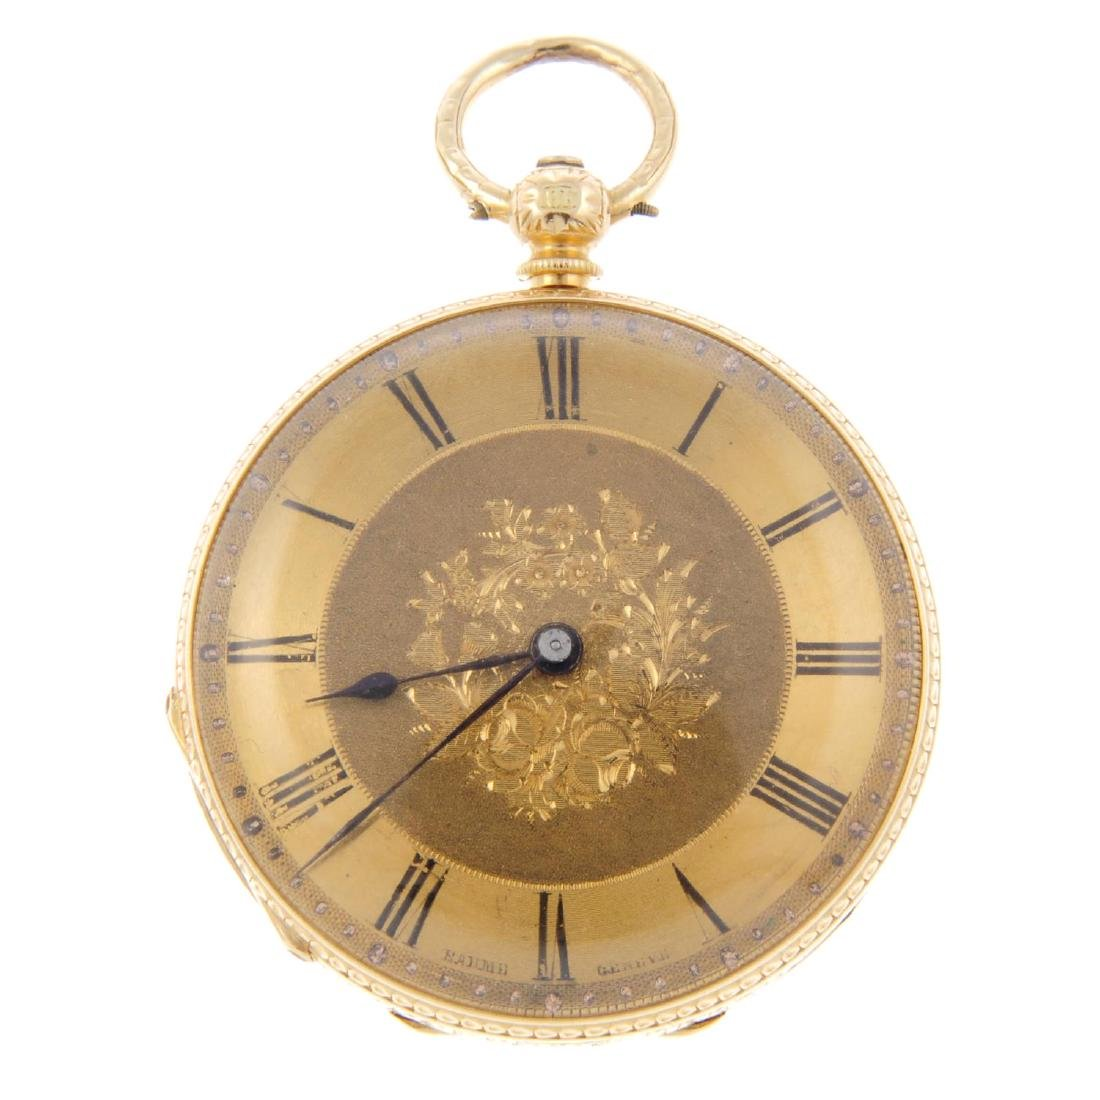 An open face fob watch by Baume B&L Genève. Yellow